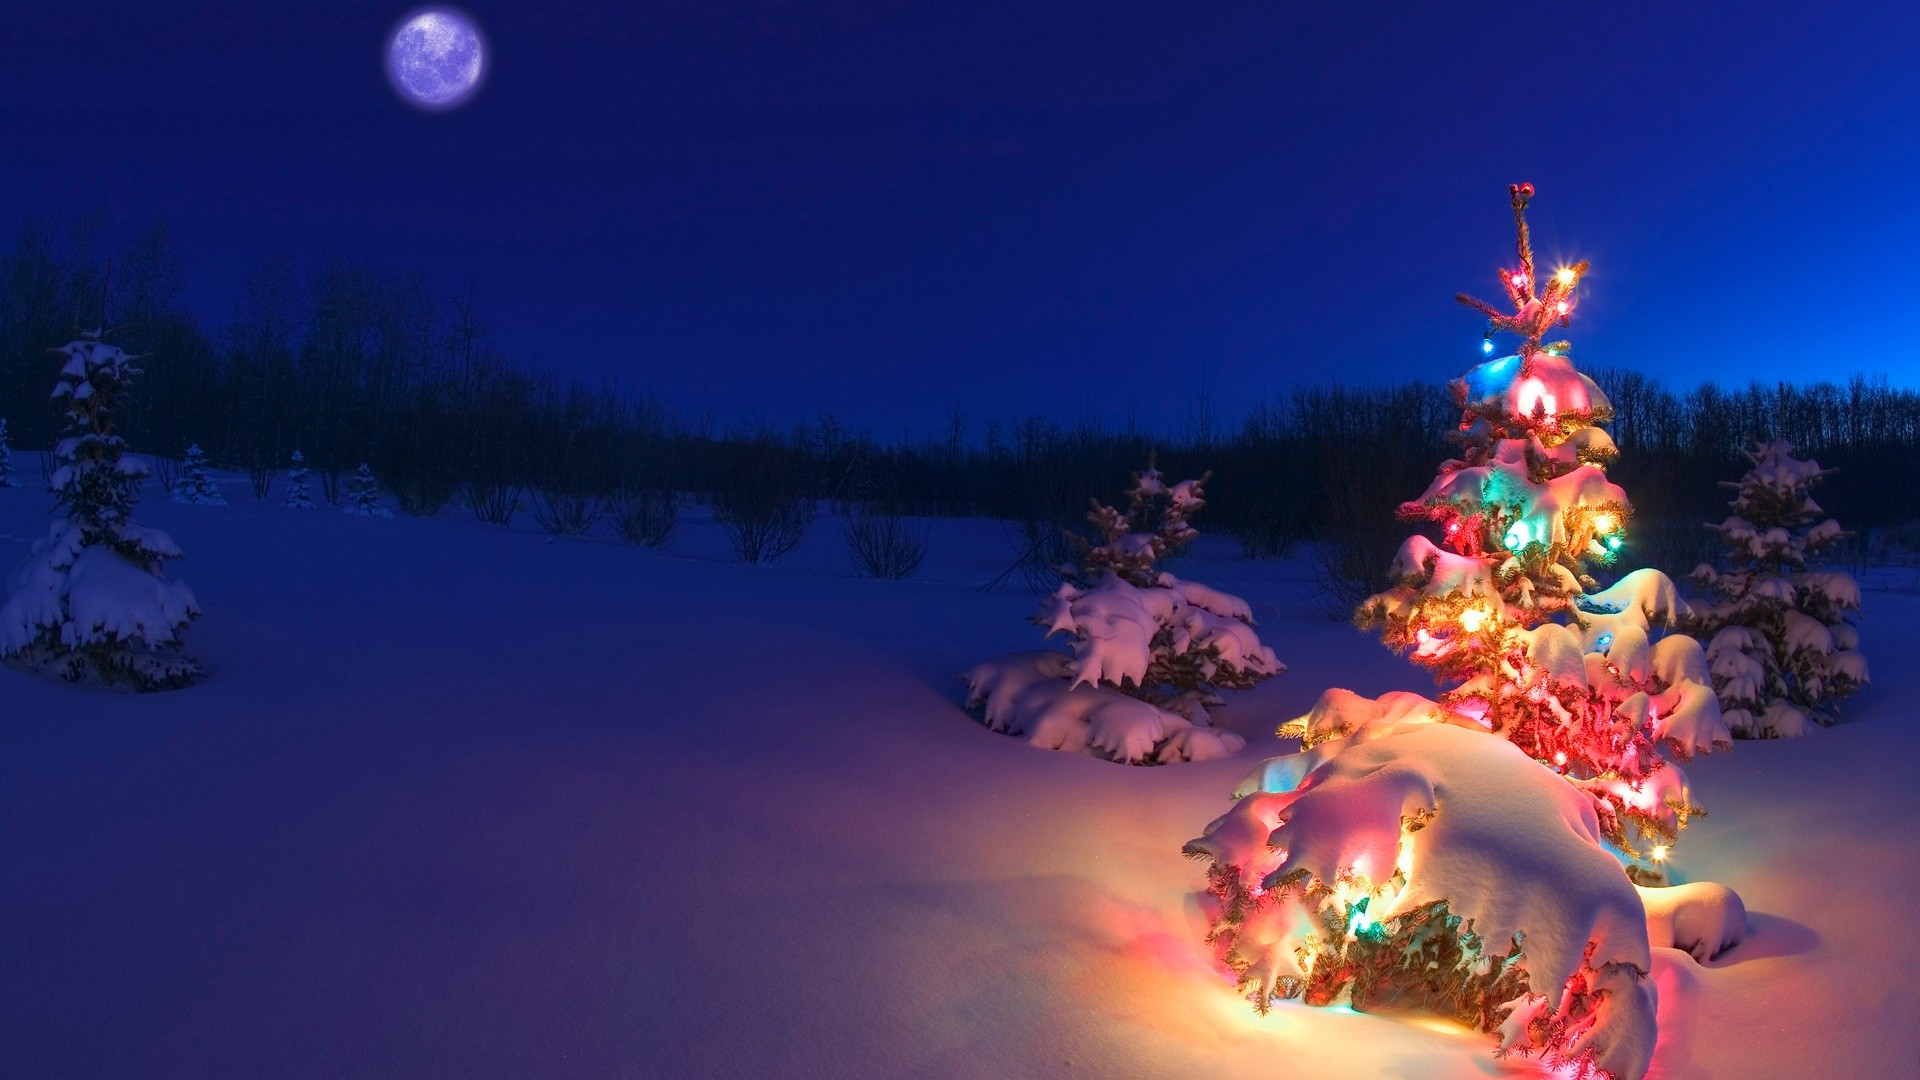 1920x1080 Christmas Backgrounds Wallpapers.